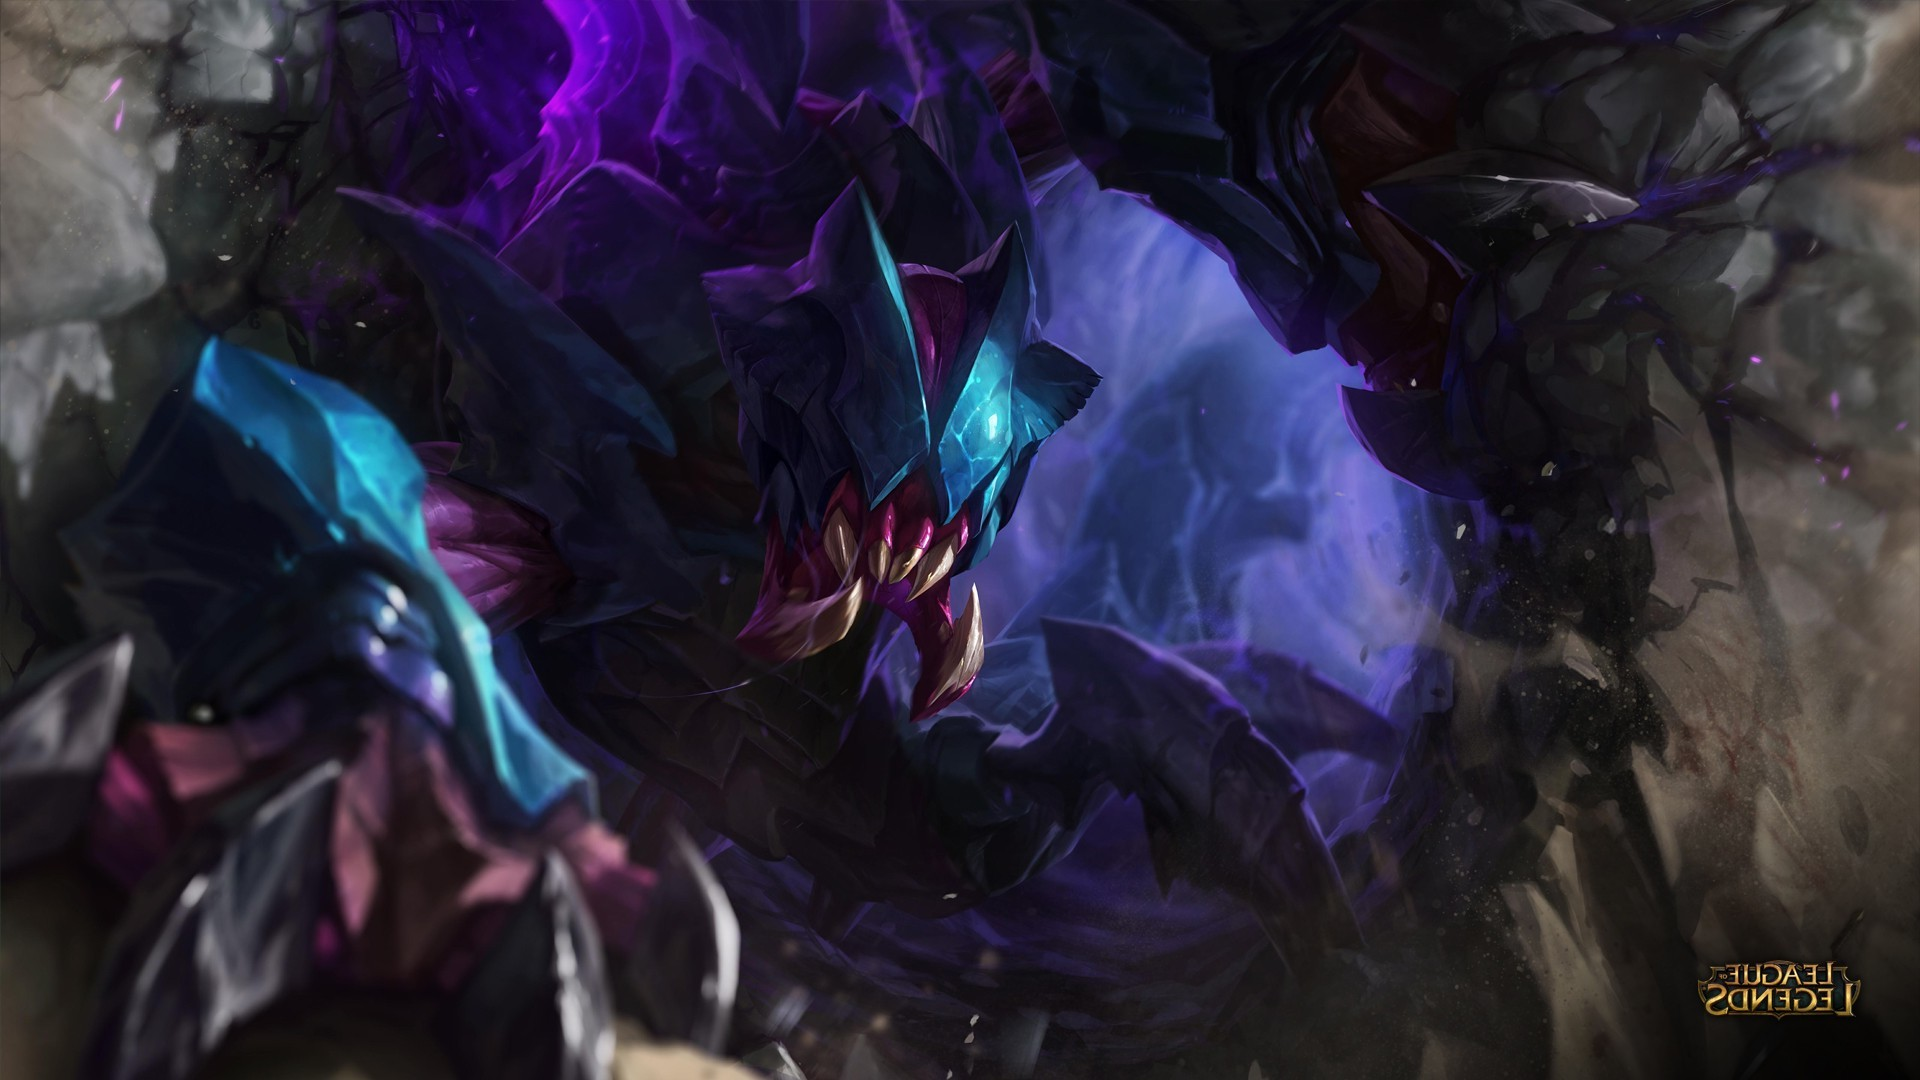 3d Lol Wallpaper League Of Legends Rek Sai Wallpapers Hd Desktop And